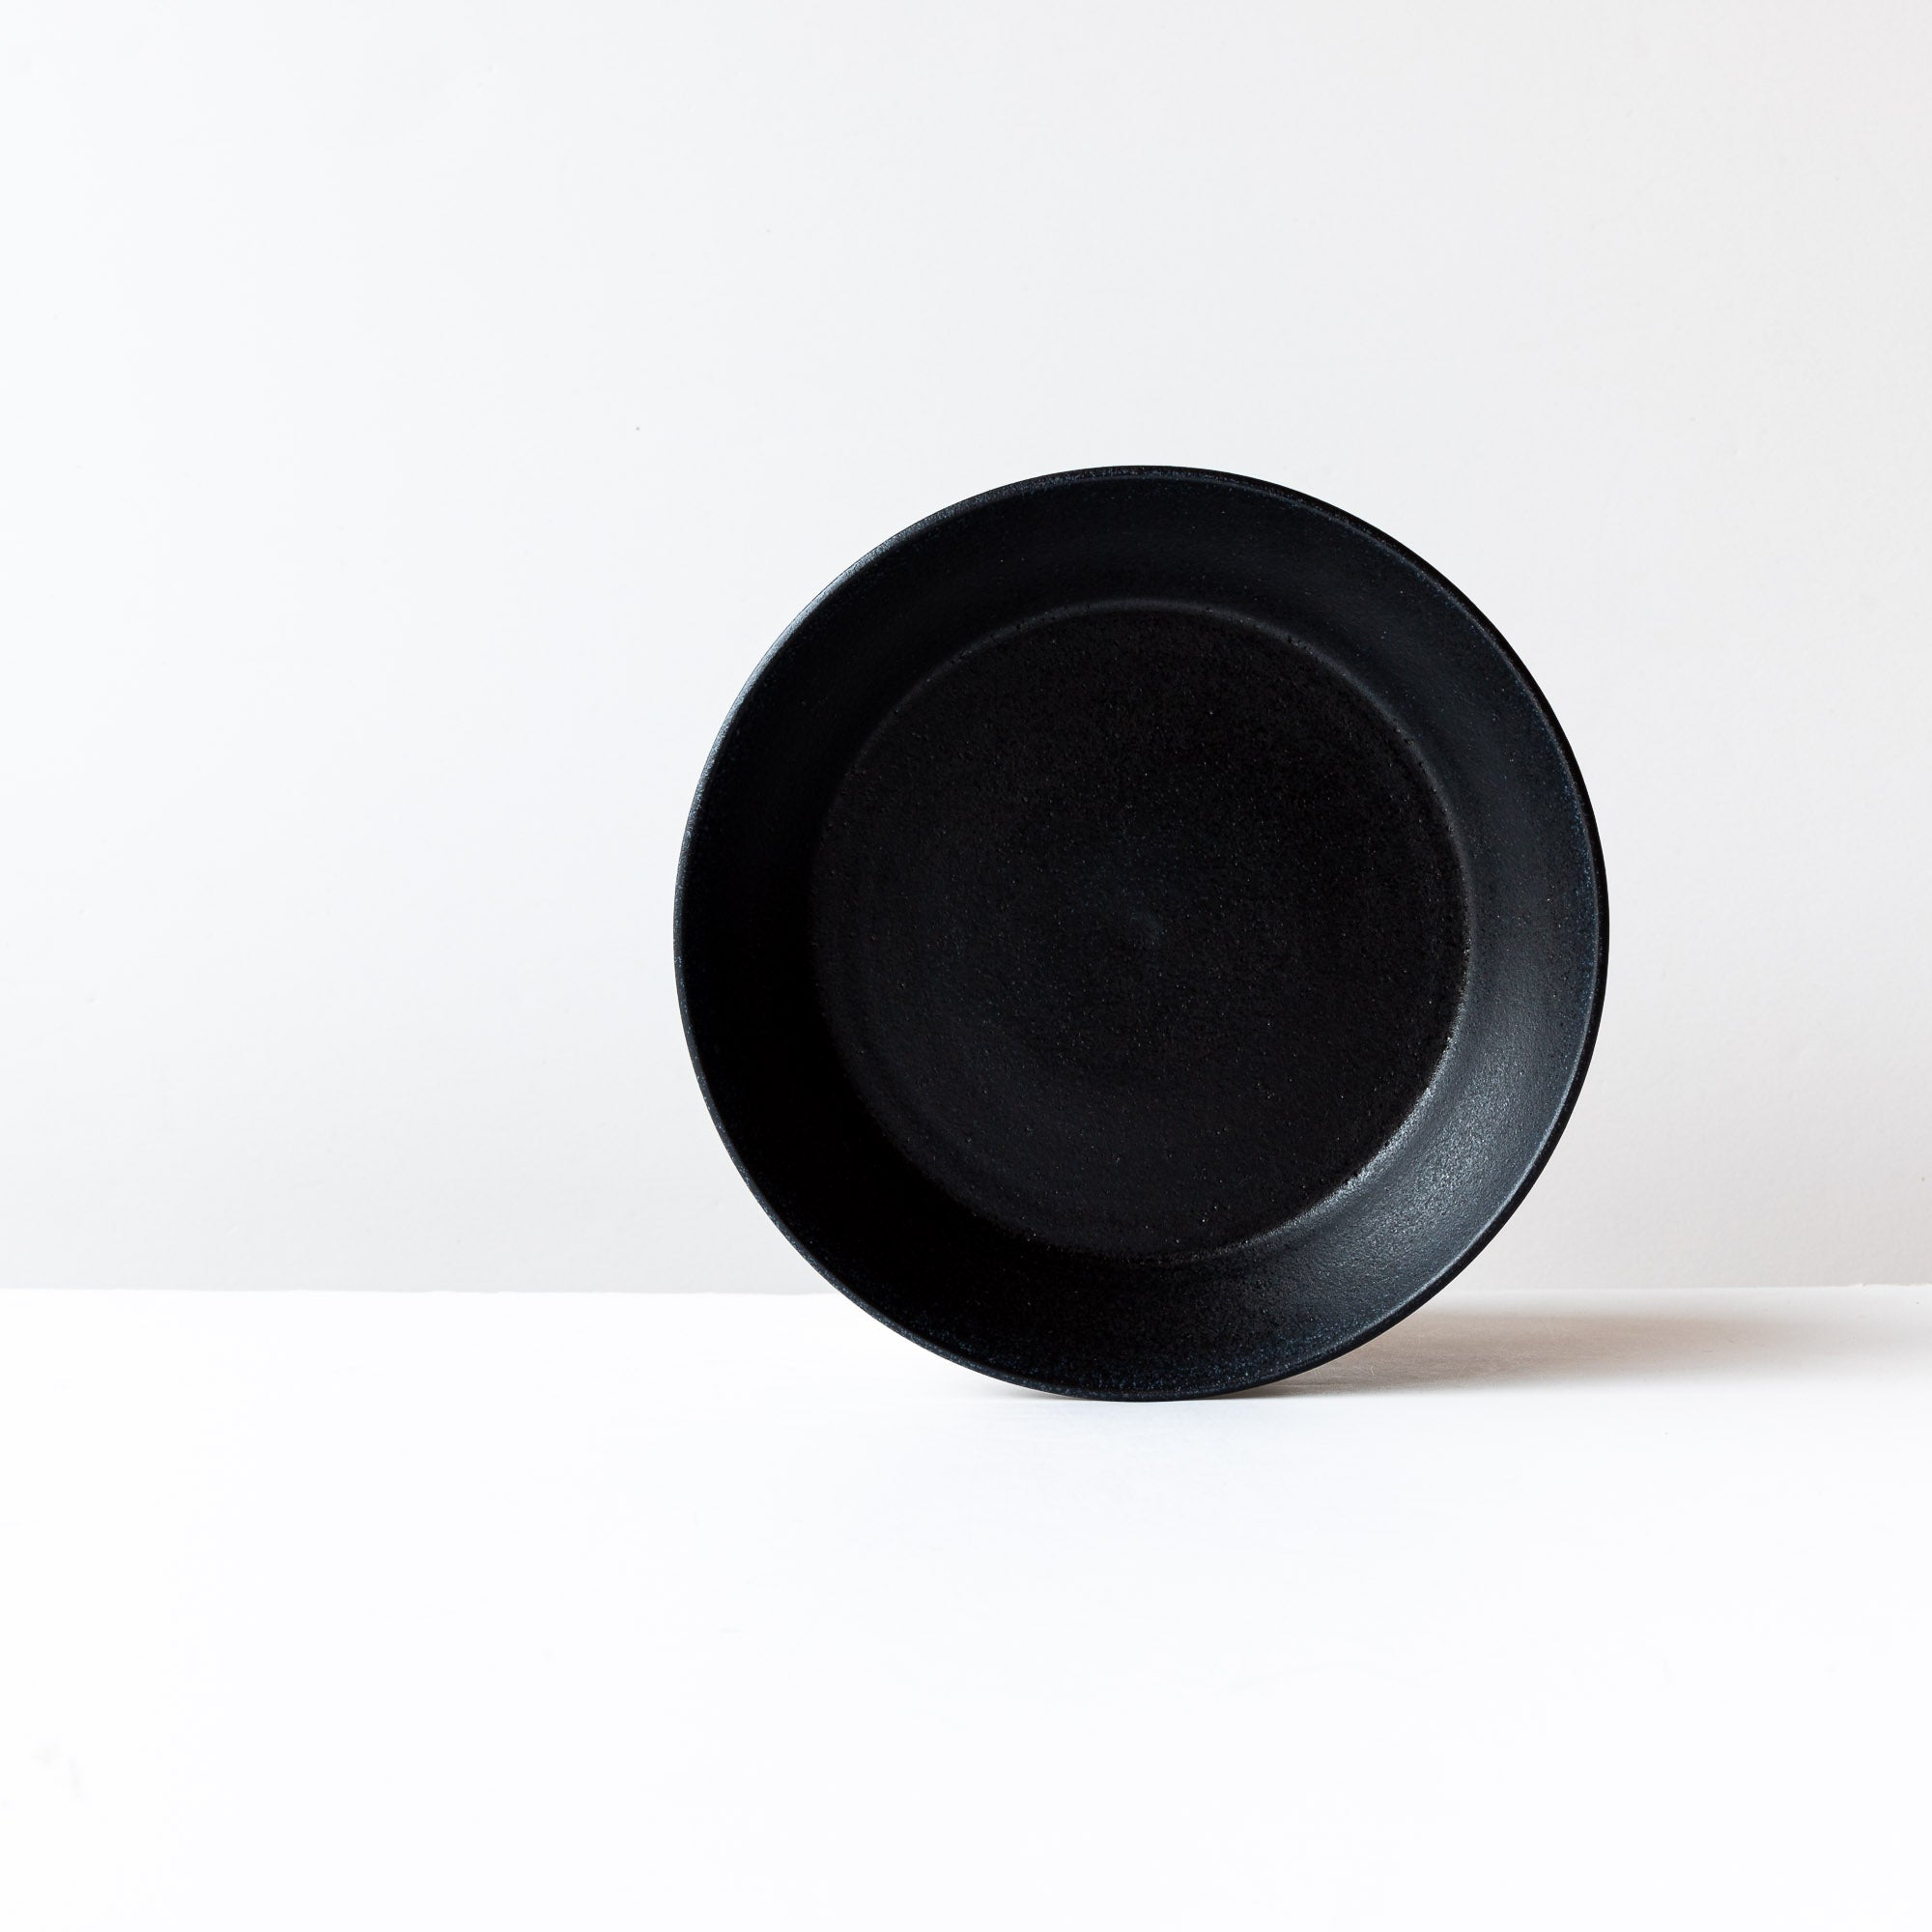 Black 9 Inch Handmade Stoneware Pie Plate / Pan Dish - Sold by Chic & Basta